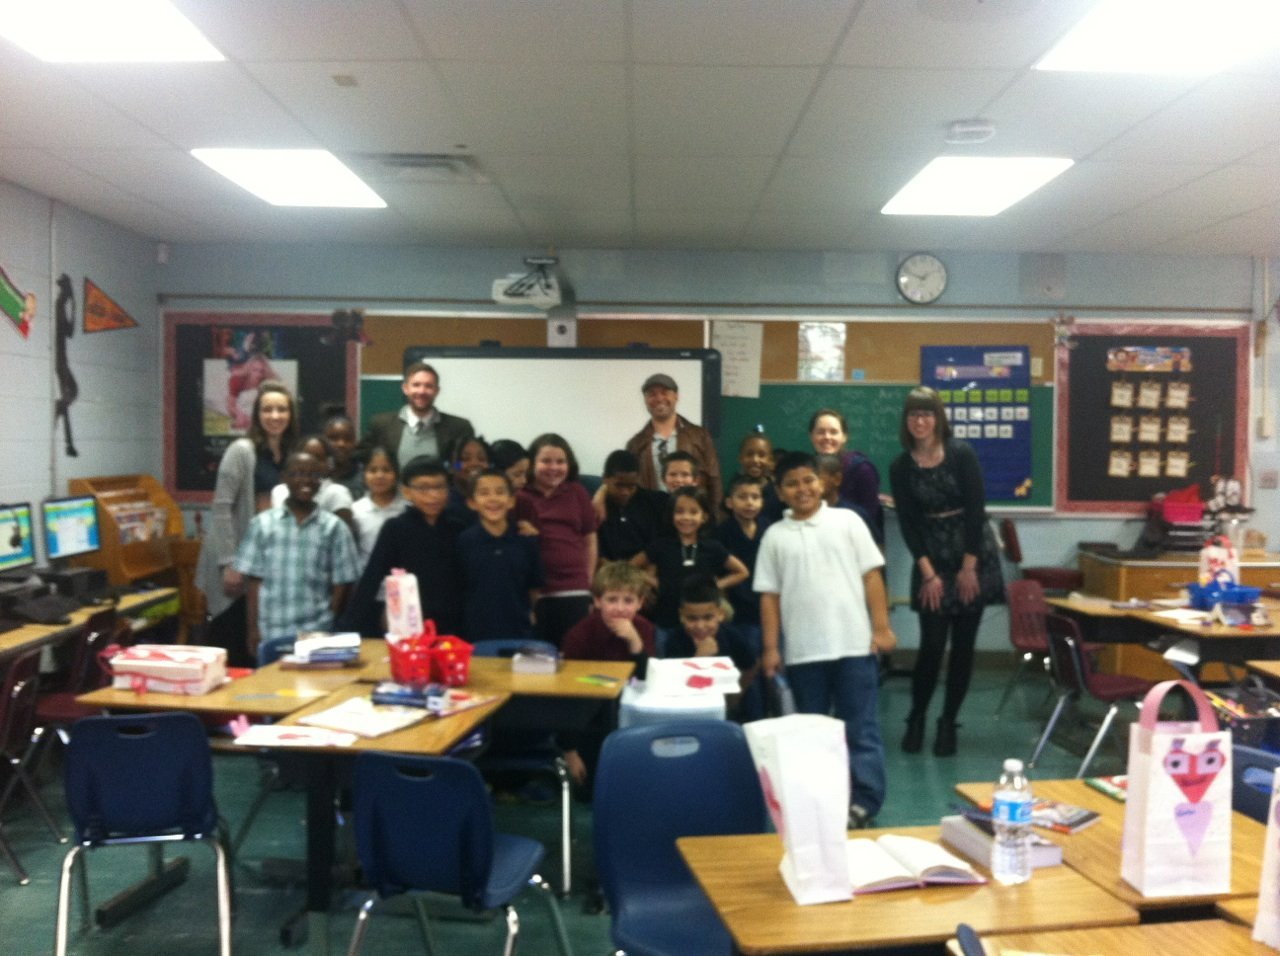 Aqua Vita & Southwestern Payroll Deliver Dictionaries to Tulsa 3rd Graders